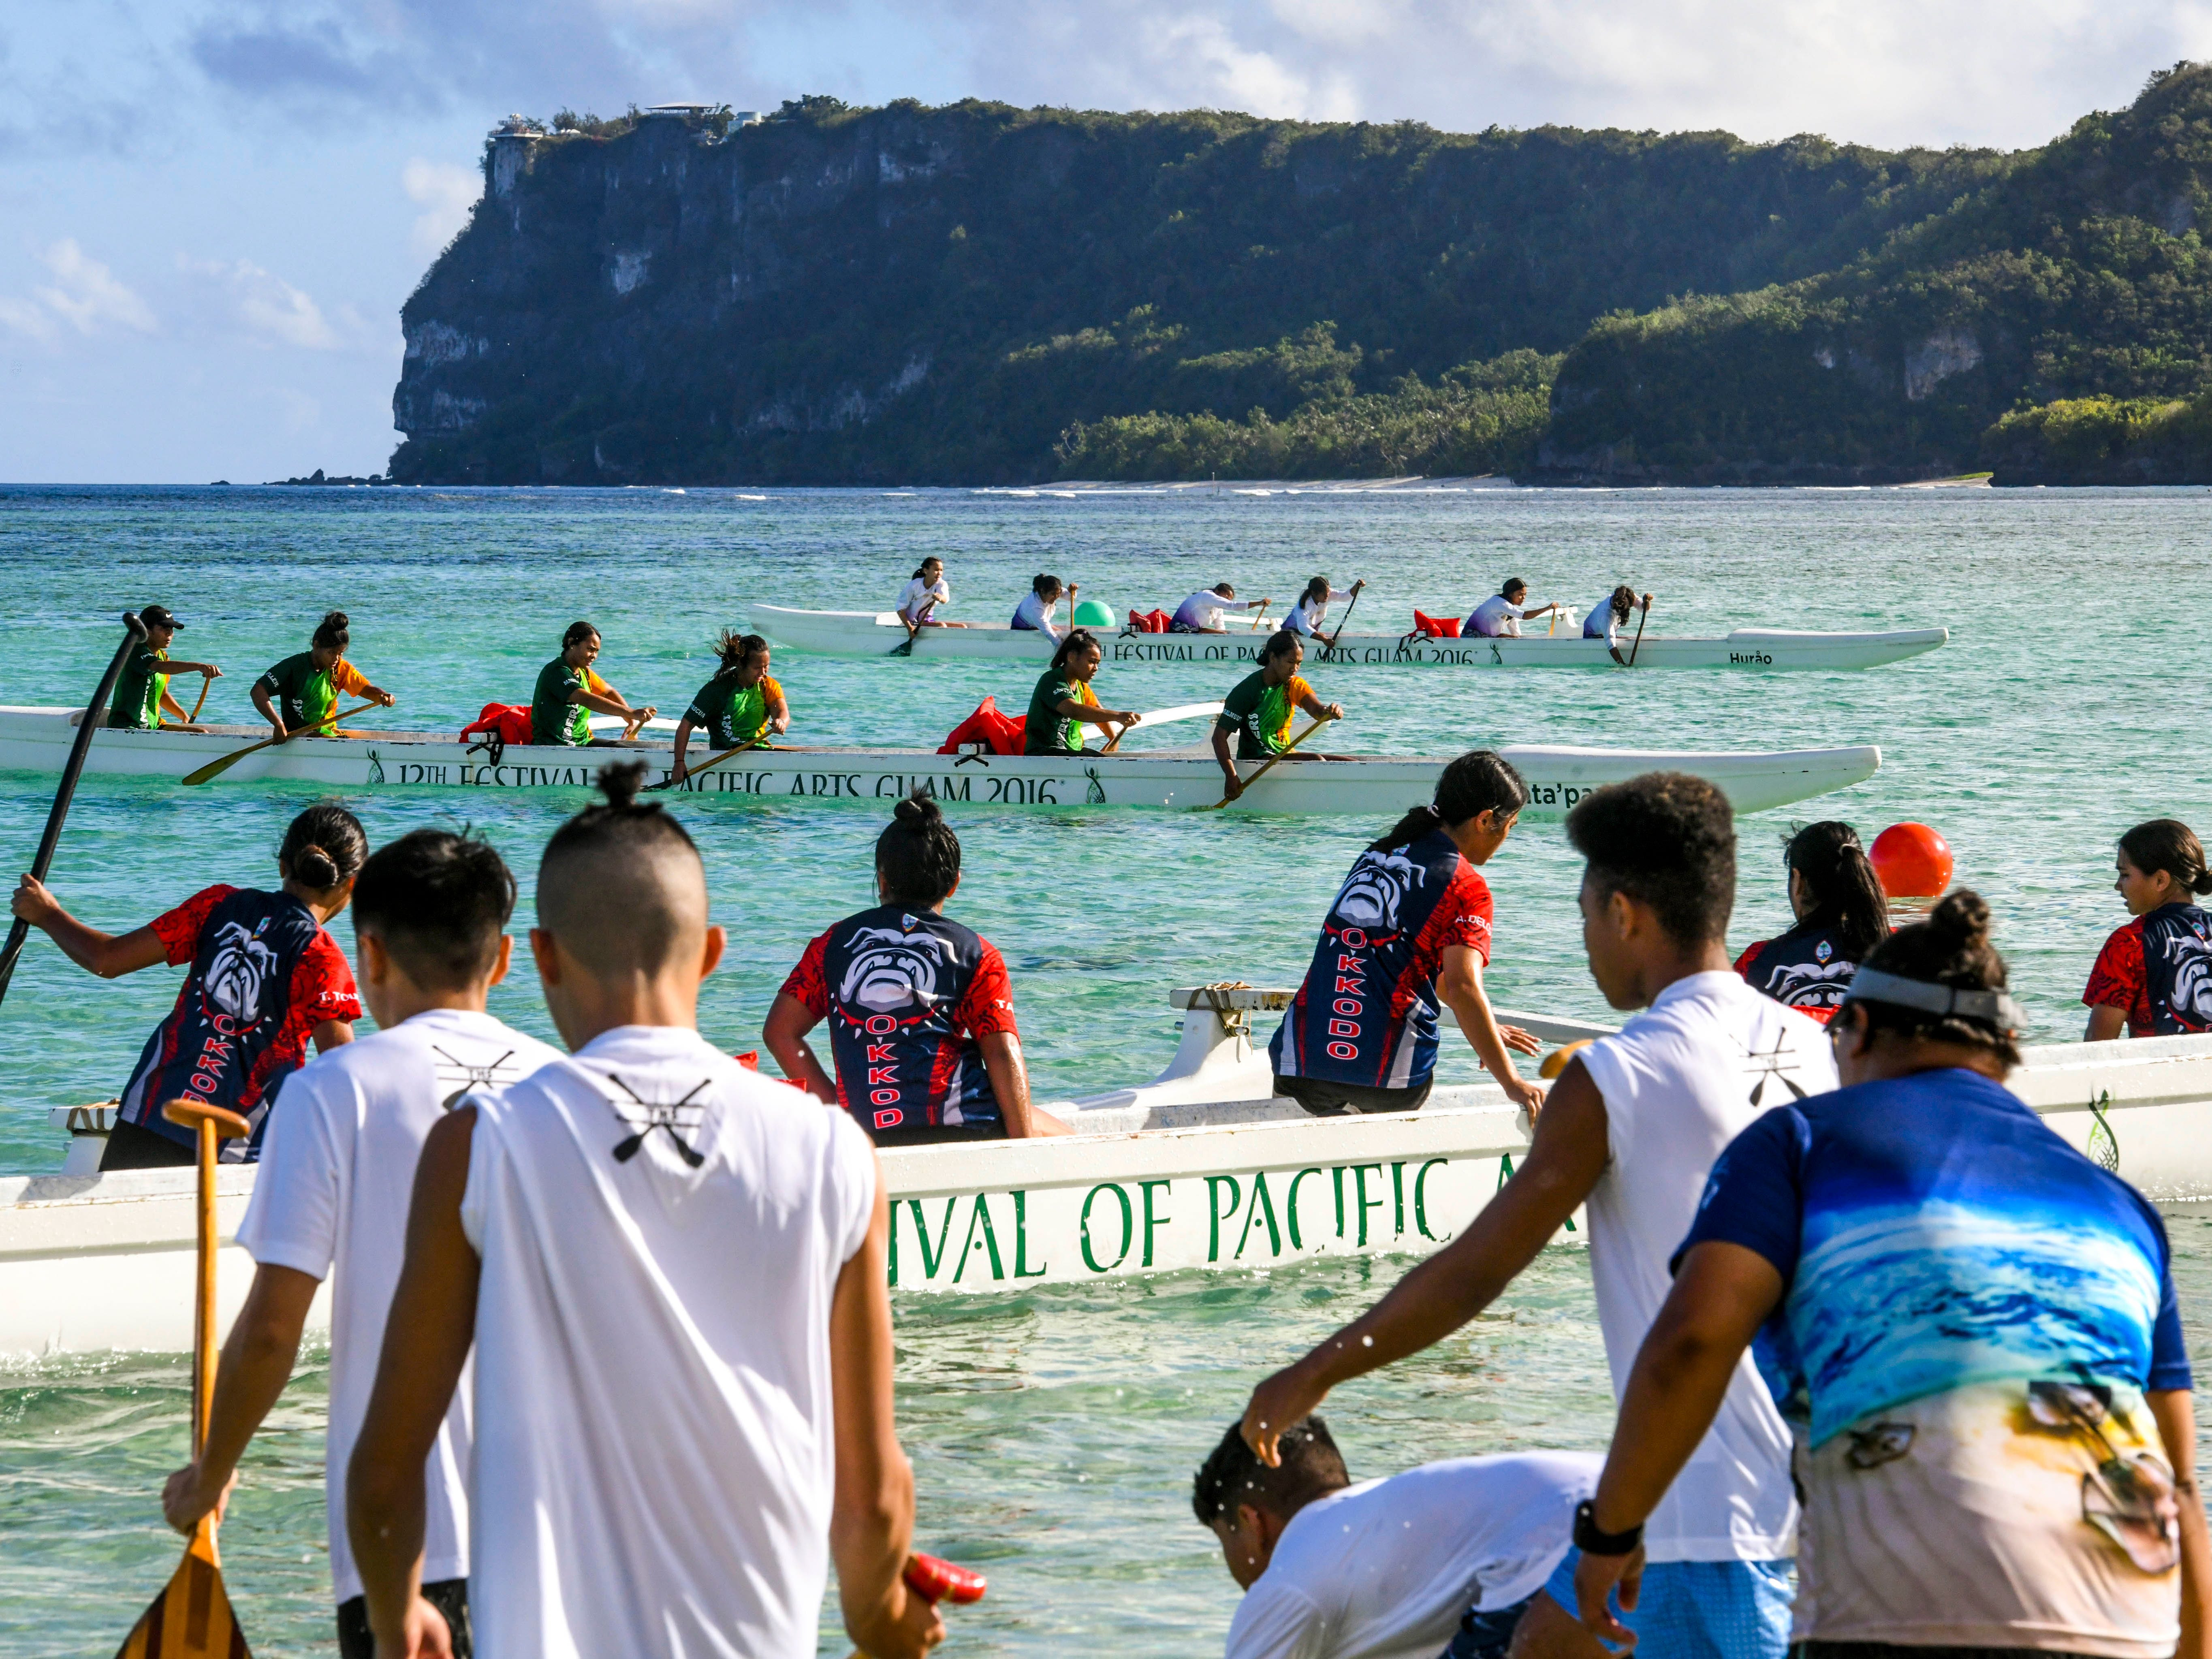 High school paddling teams push their canoes through the waters off Matapang Beach as they compete against each other in IIAAG Paddling competition preliminary races in Tumon on Saturday, May 11, 2019.